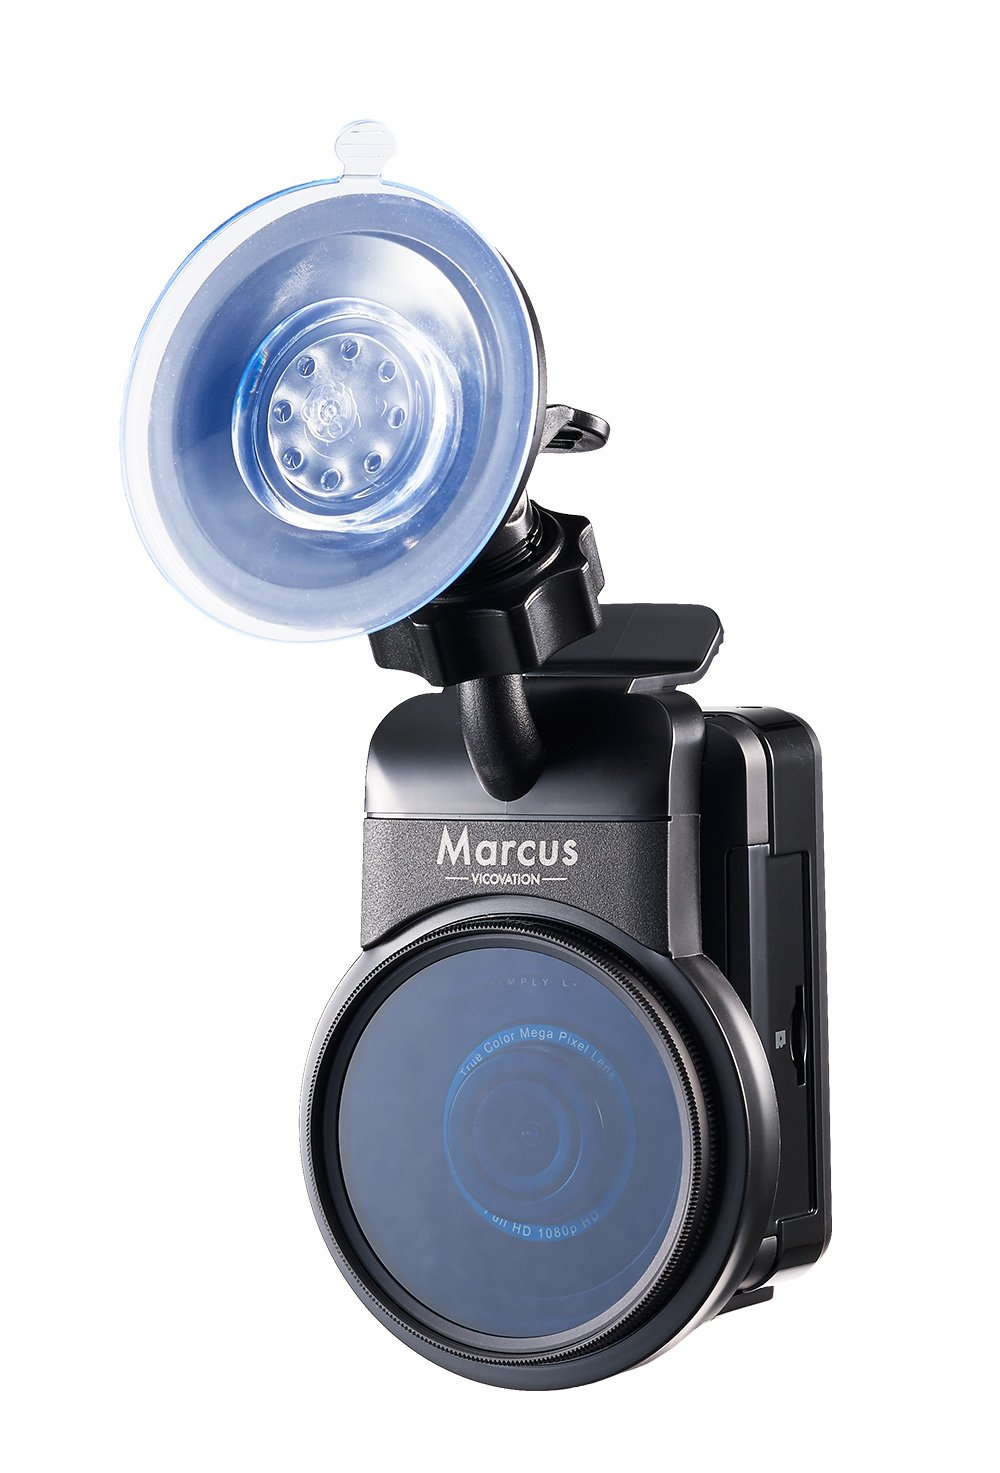 Vicovation Vico-Marcus1 Car Camcorder Drivers Update